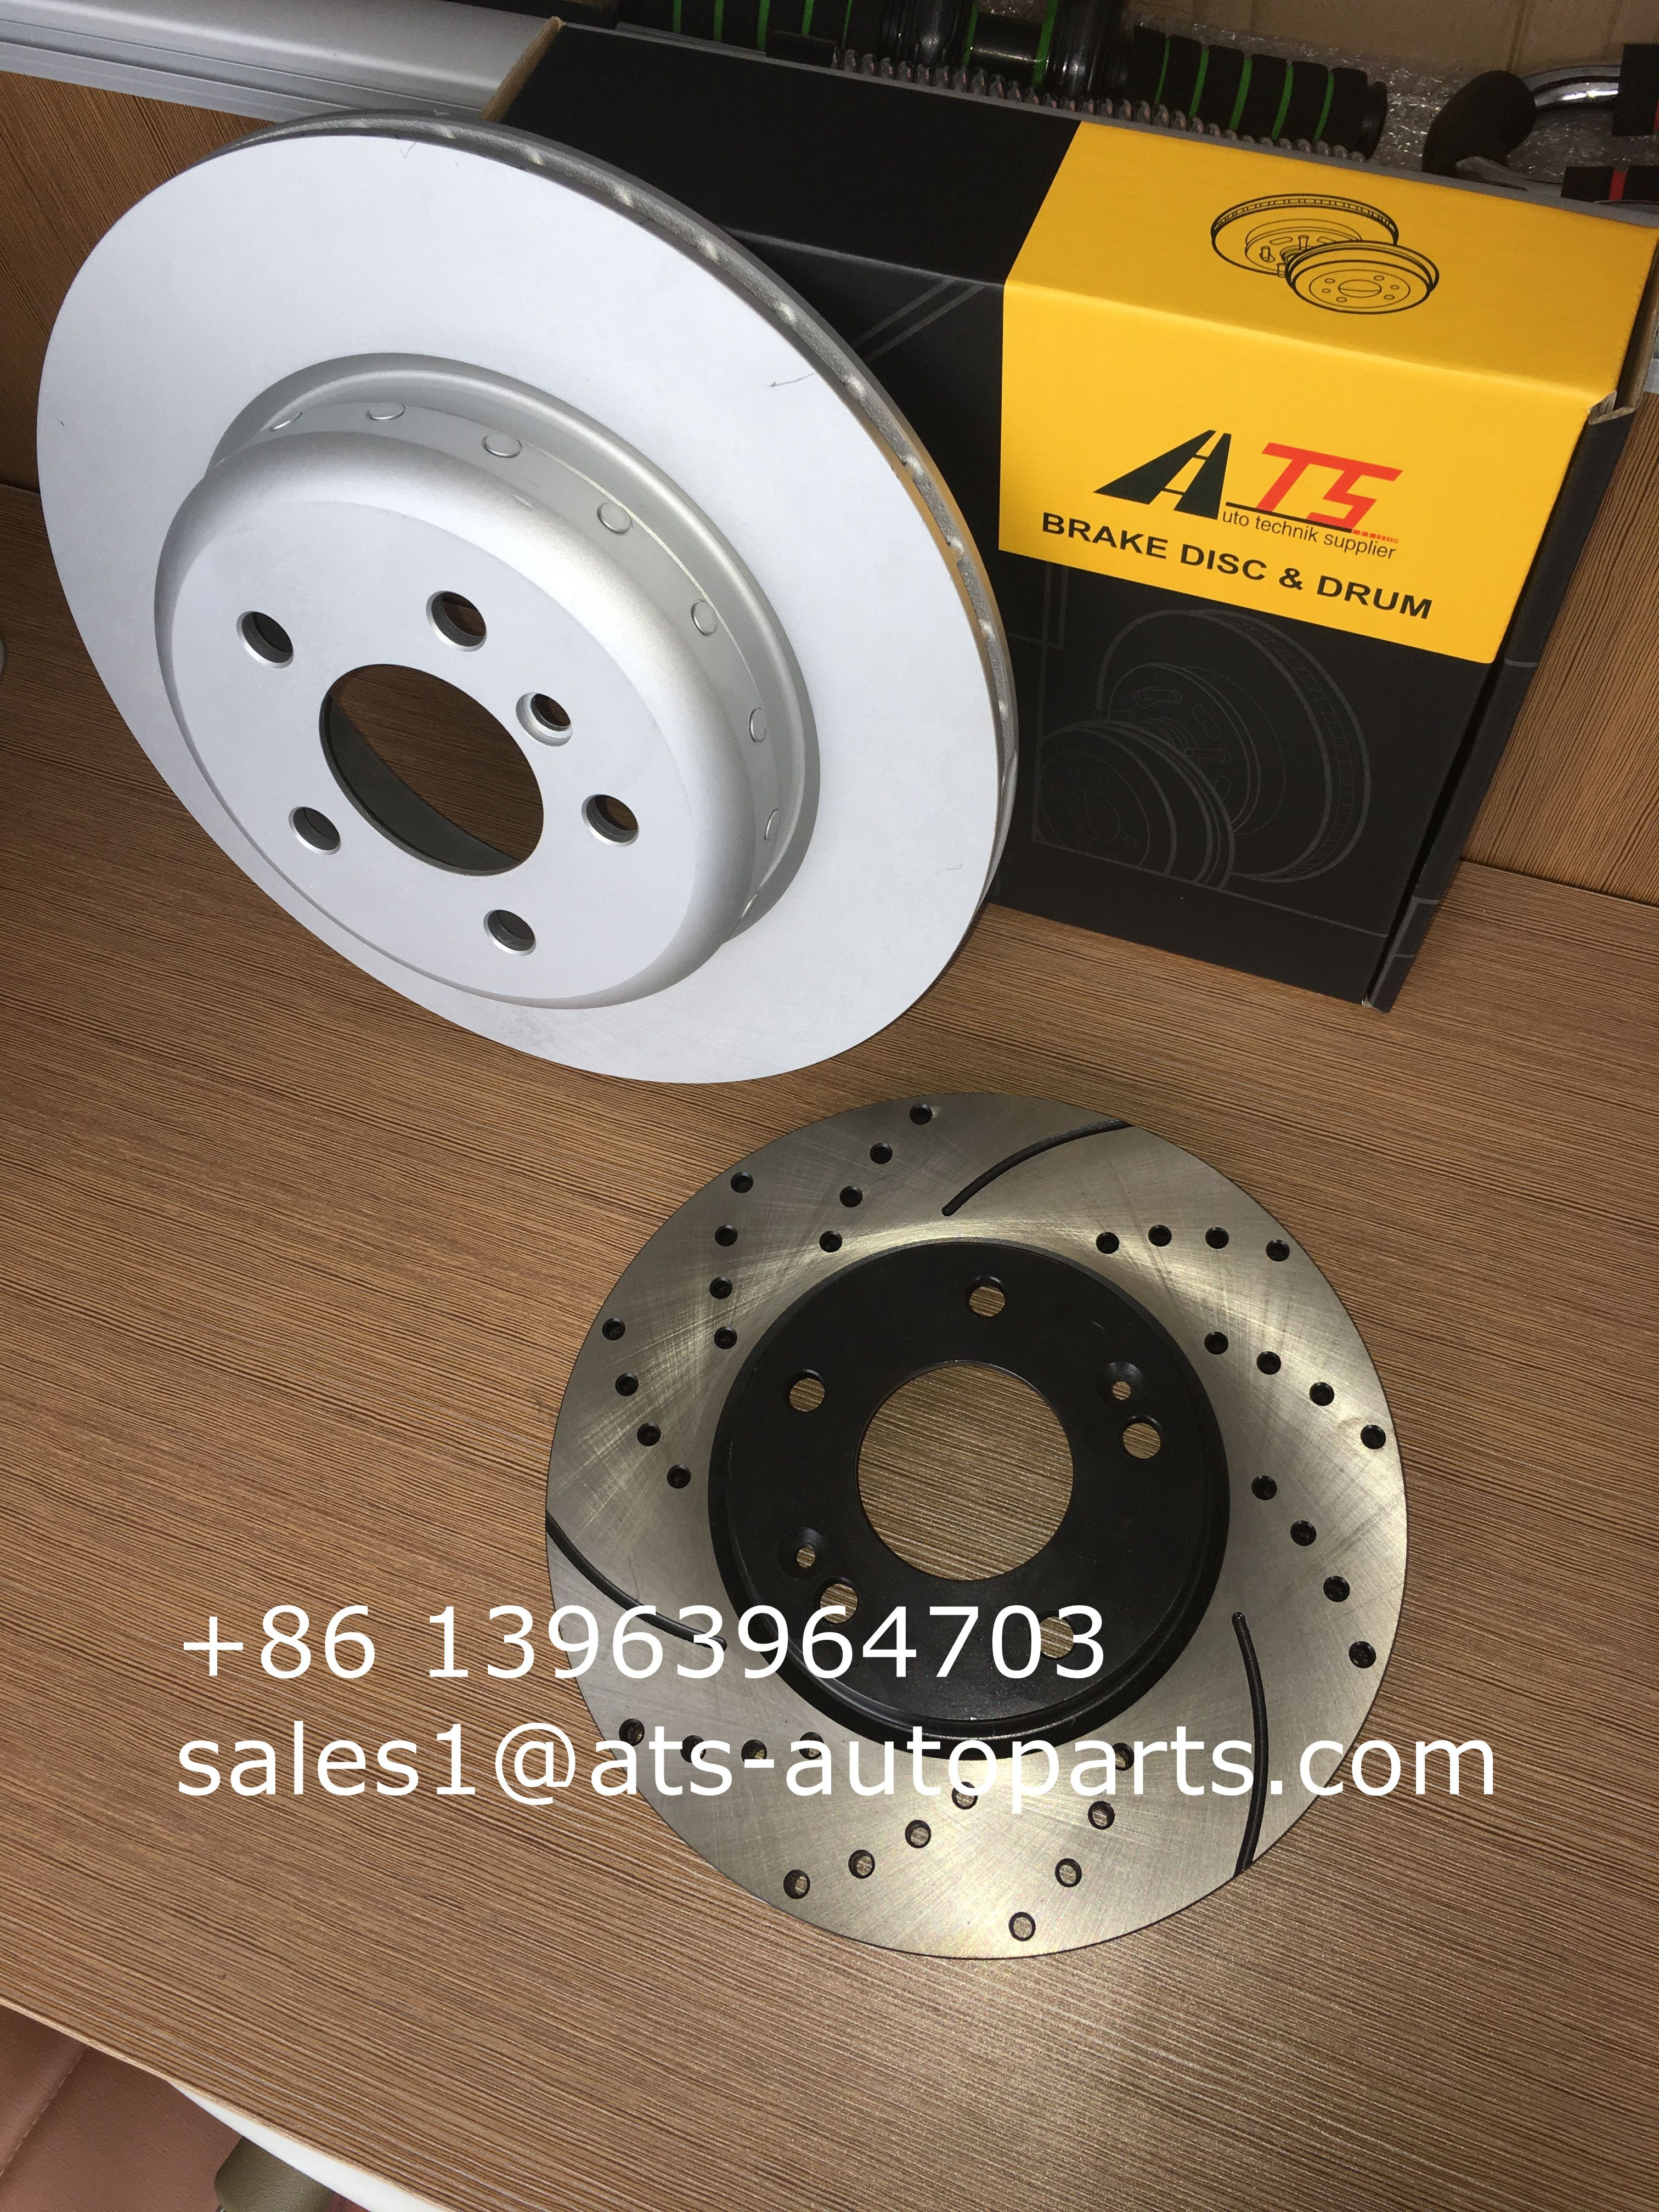 A-Team Performance Brake Proportioning Valve Disc//Drum Compatible With GM Chevy Chevrolet PV2 Aluminum ACDELCO OEM Quality